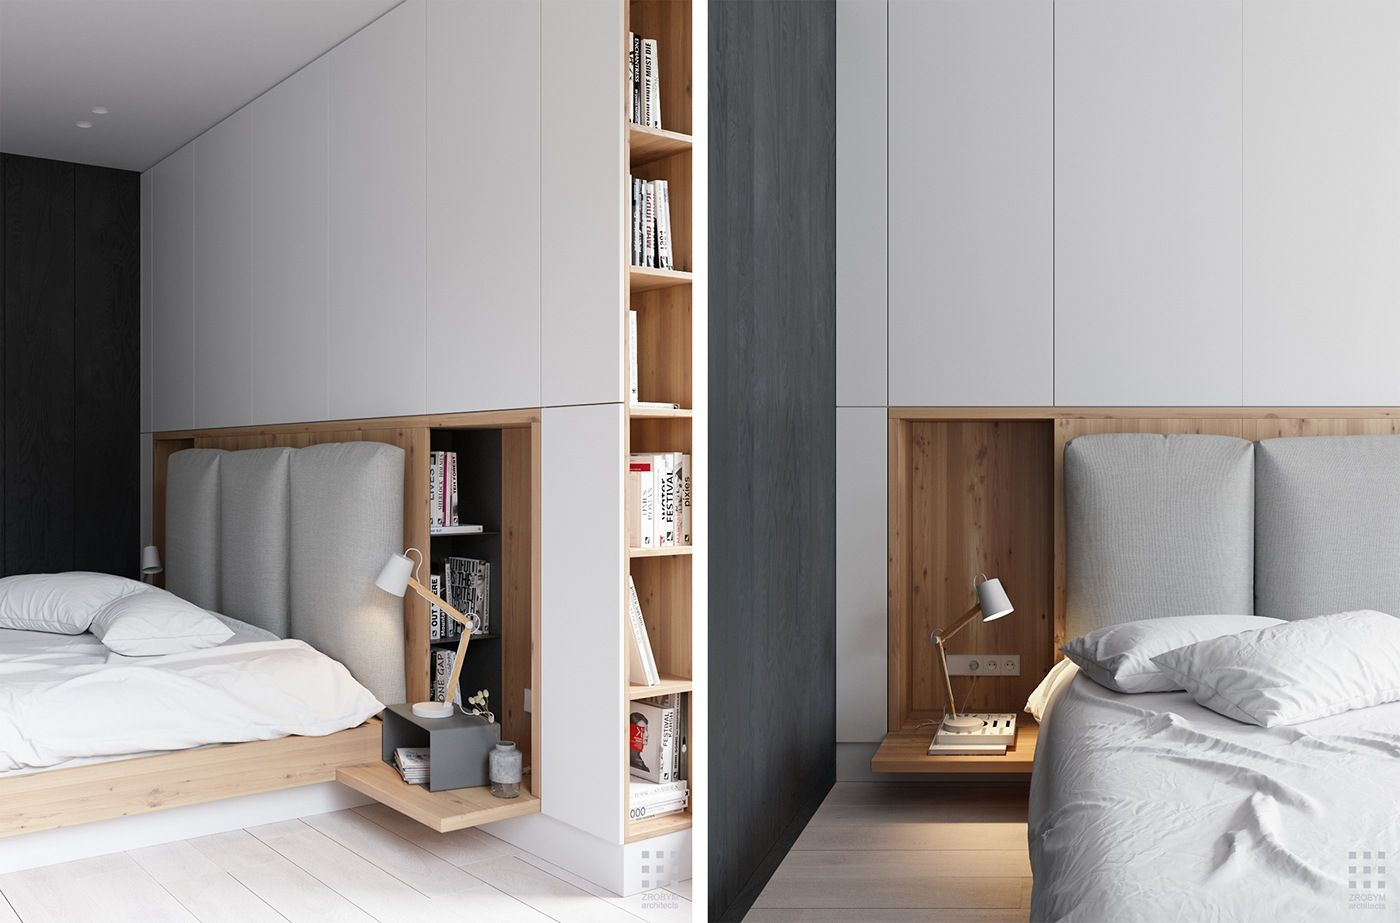 False wall with storage for books and modern bedroom zone